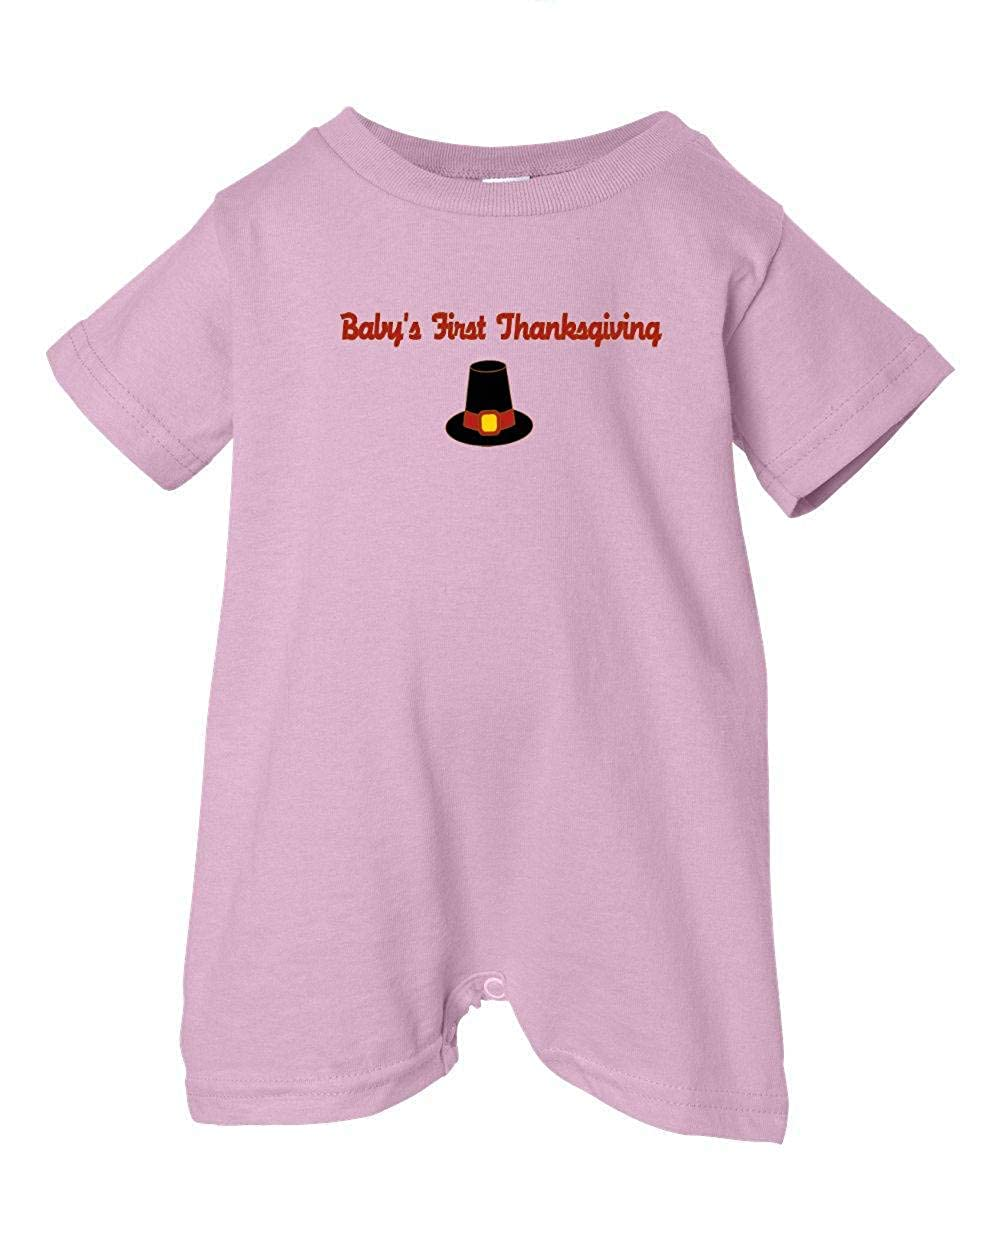 Festive Threads Unisex Baby Babys First Thanksgiving Pink, 6 Months Pilgrim T-Shirt Romper